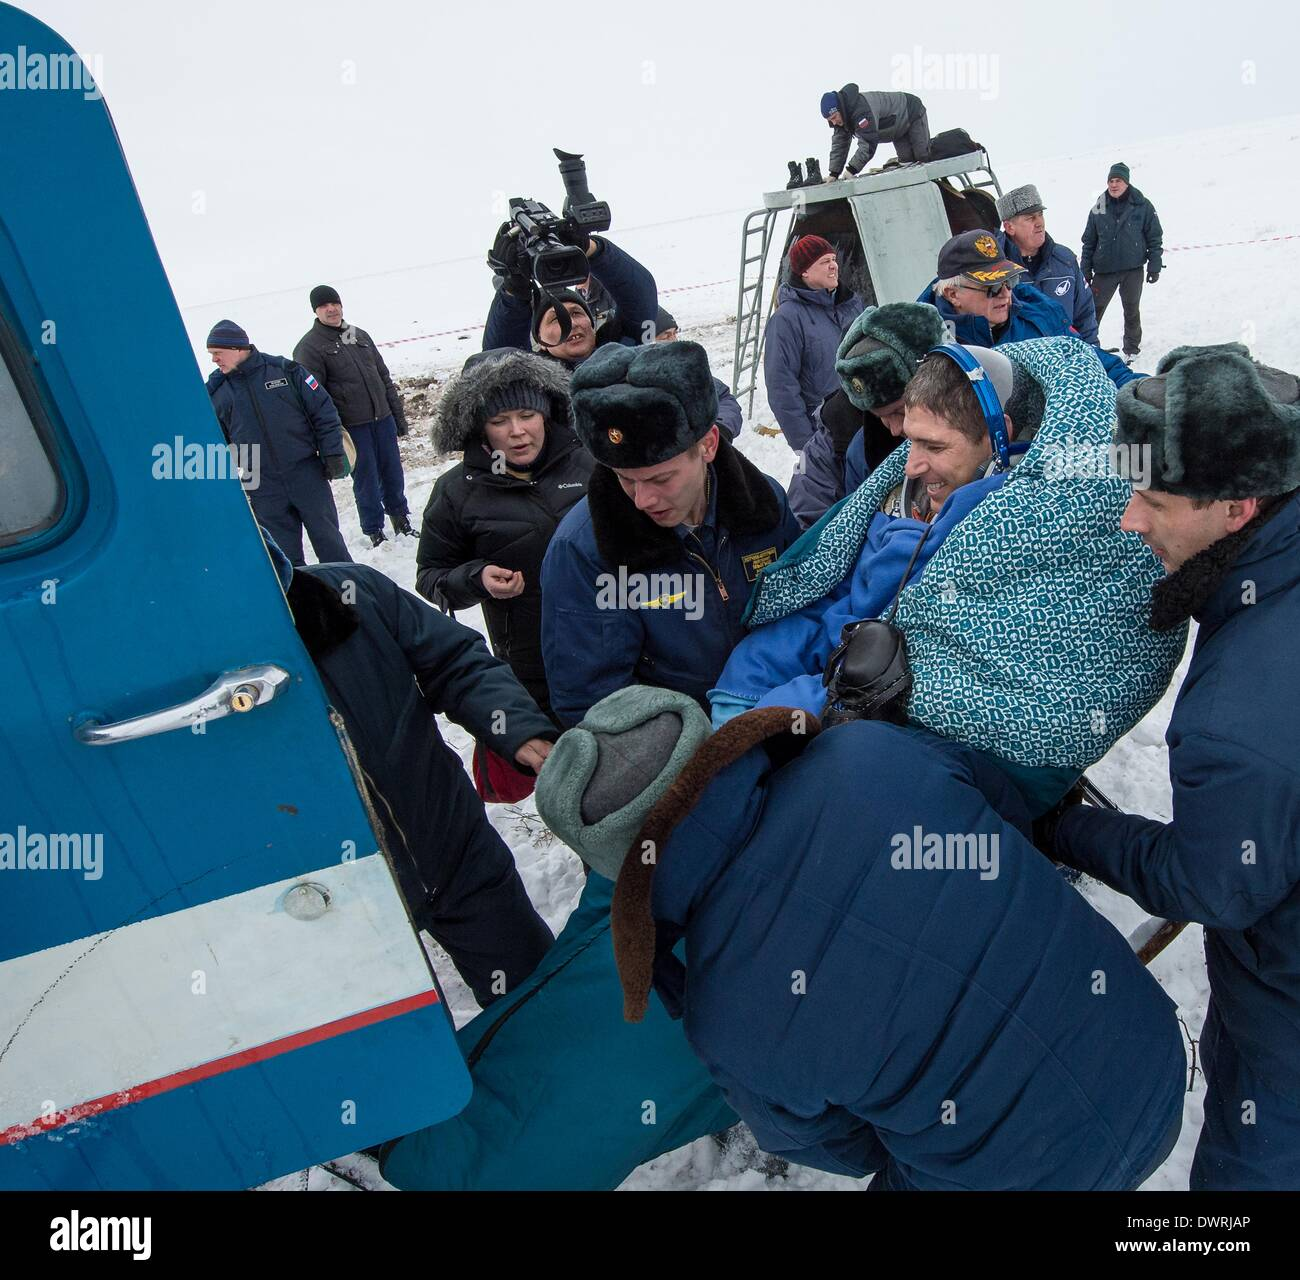 Karaganda airport, Kazakhstan. 11th March, 2014. International Space State Expedition 38 astronaut Mike Hopkins of NASA is helped into a Russian Search and Rescue all terrain vehicle from the Soyuz Capsule after landing in a Soyuz TMA-10M spacecraft March 11, 2014 near the town of Zhezkazgan, Kazakhstan. Hopkins, Kotov and Ryazanskiy returned to Earth after five and a half months onboard the International Space Station. Credit:  Planetpix/Alamy Live News - Stock Image